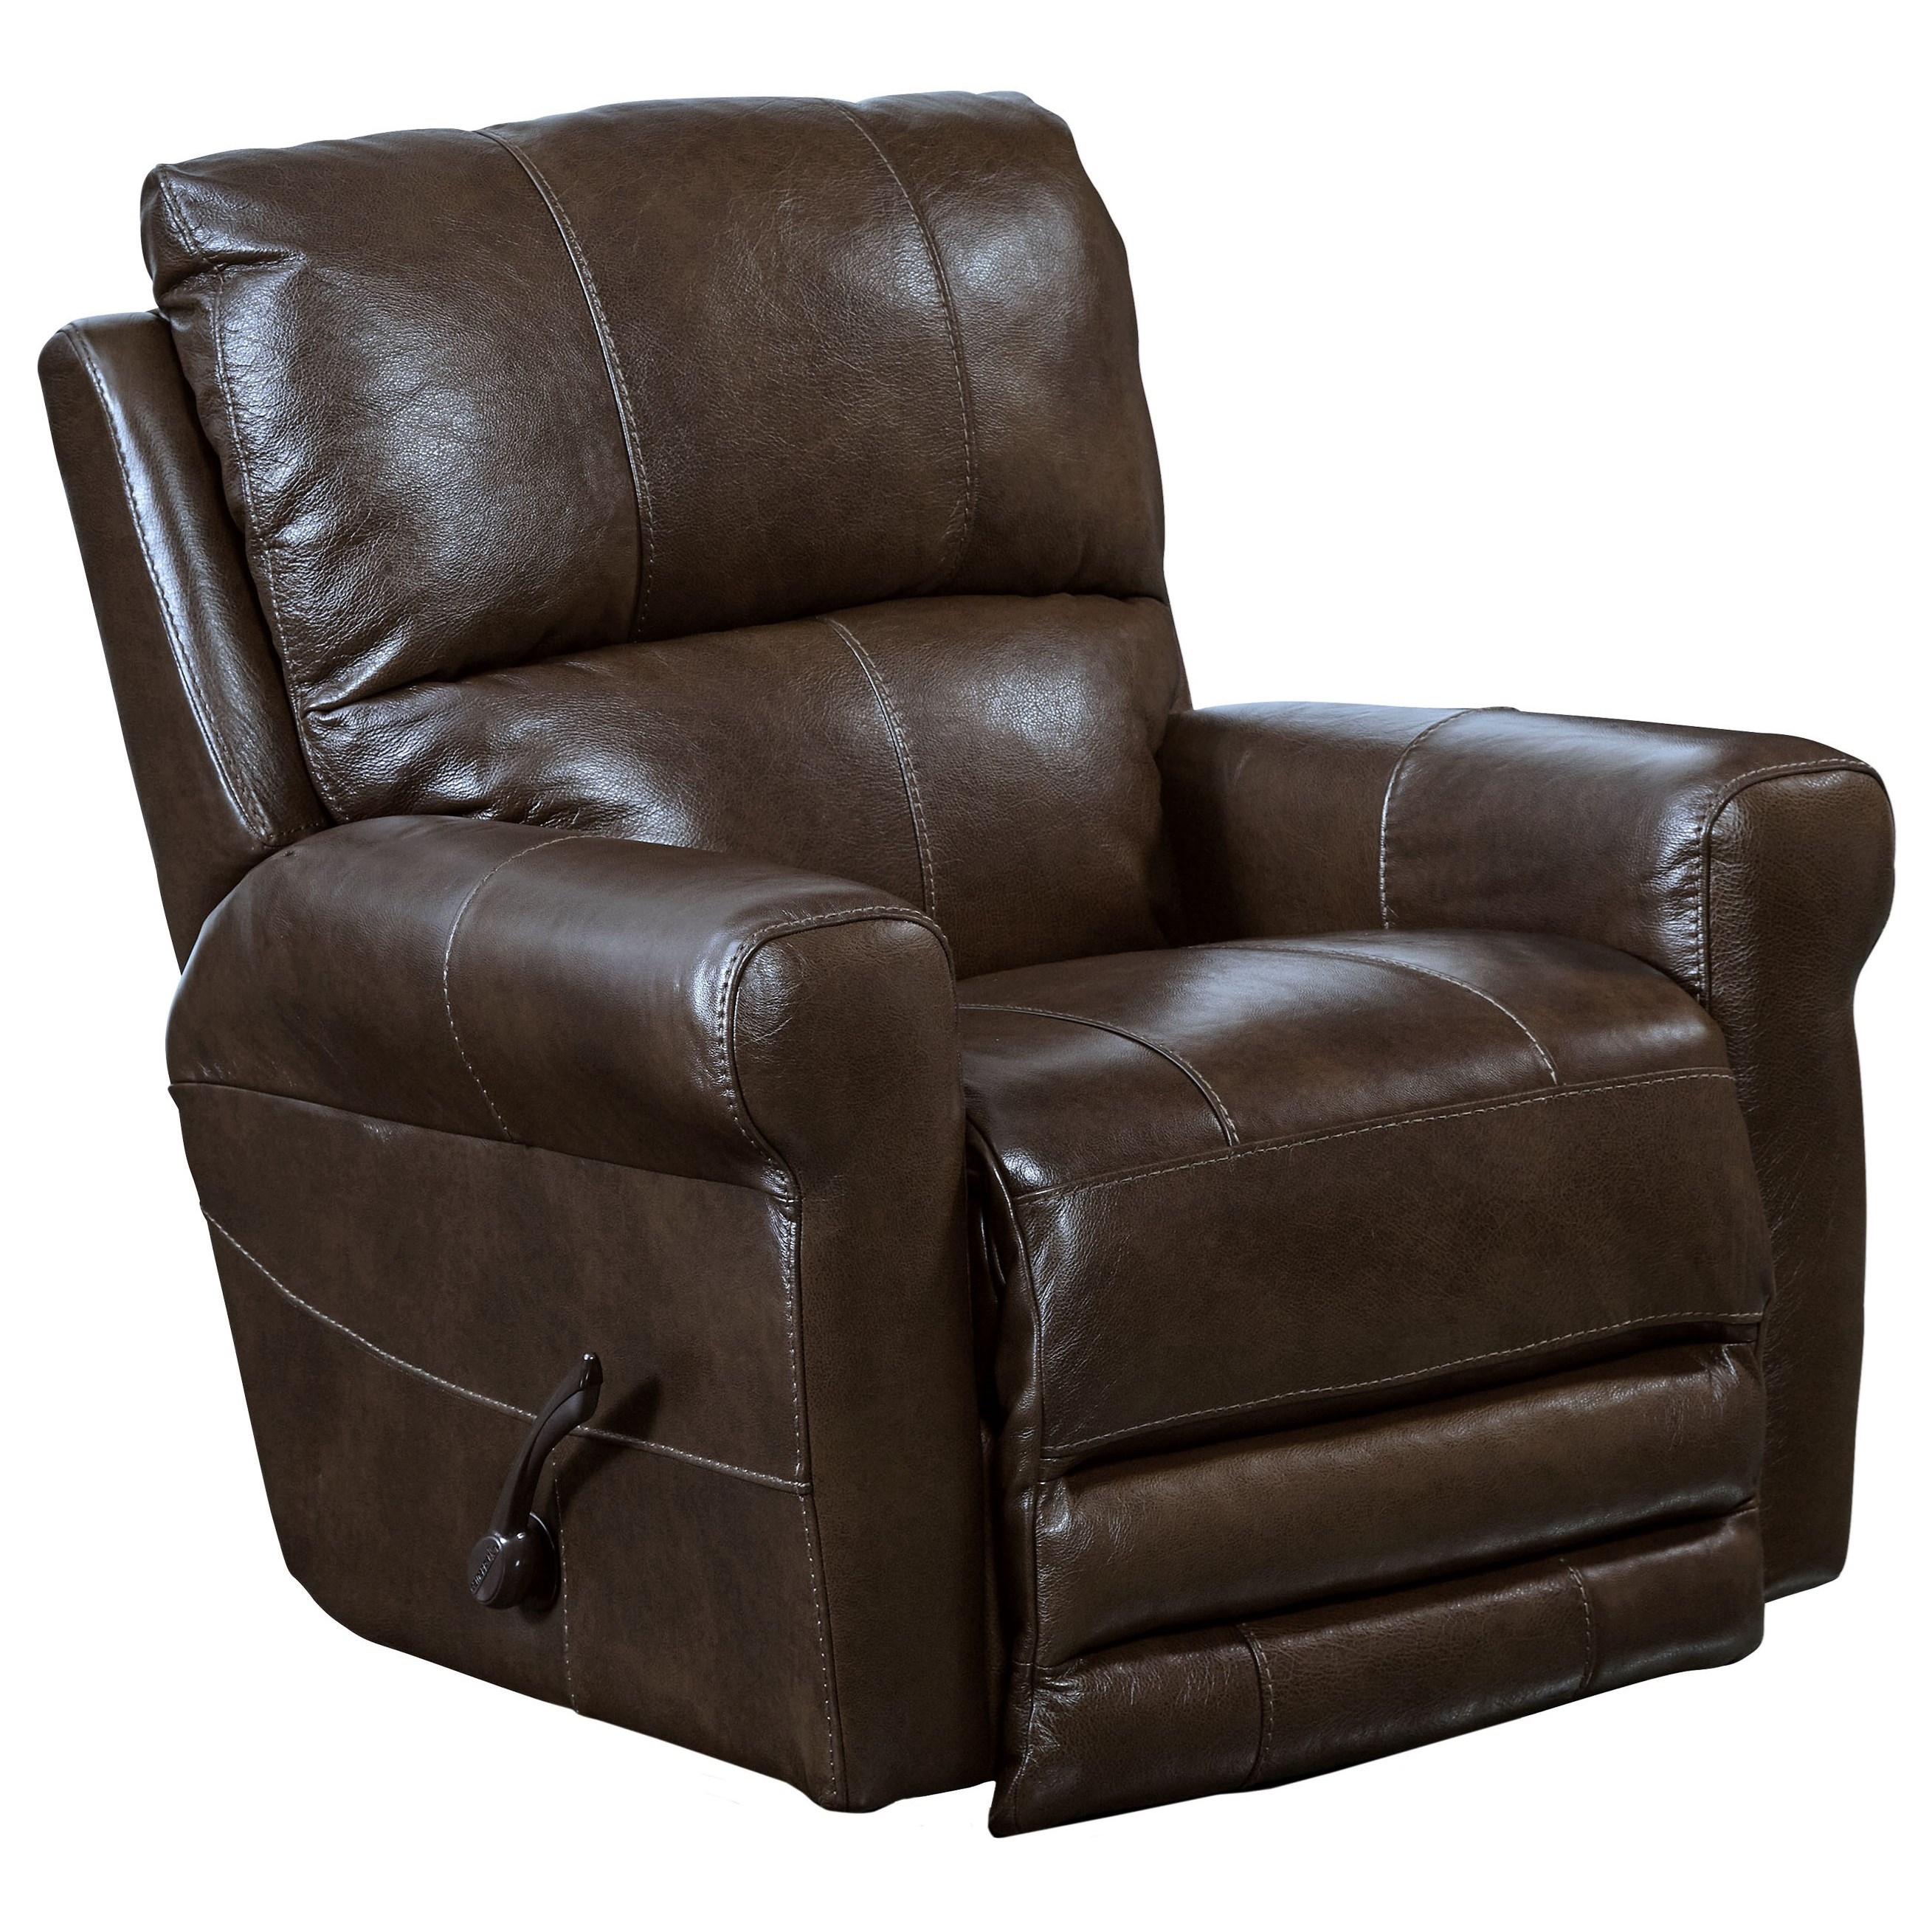 Catnapper Motion Chairs And Recliners Hoffner Power Lay Flat Recliner    Item Number: 647667